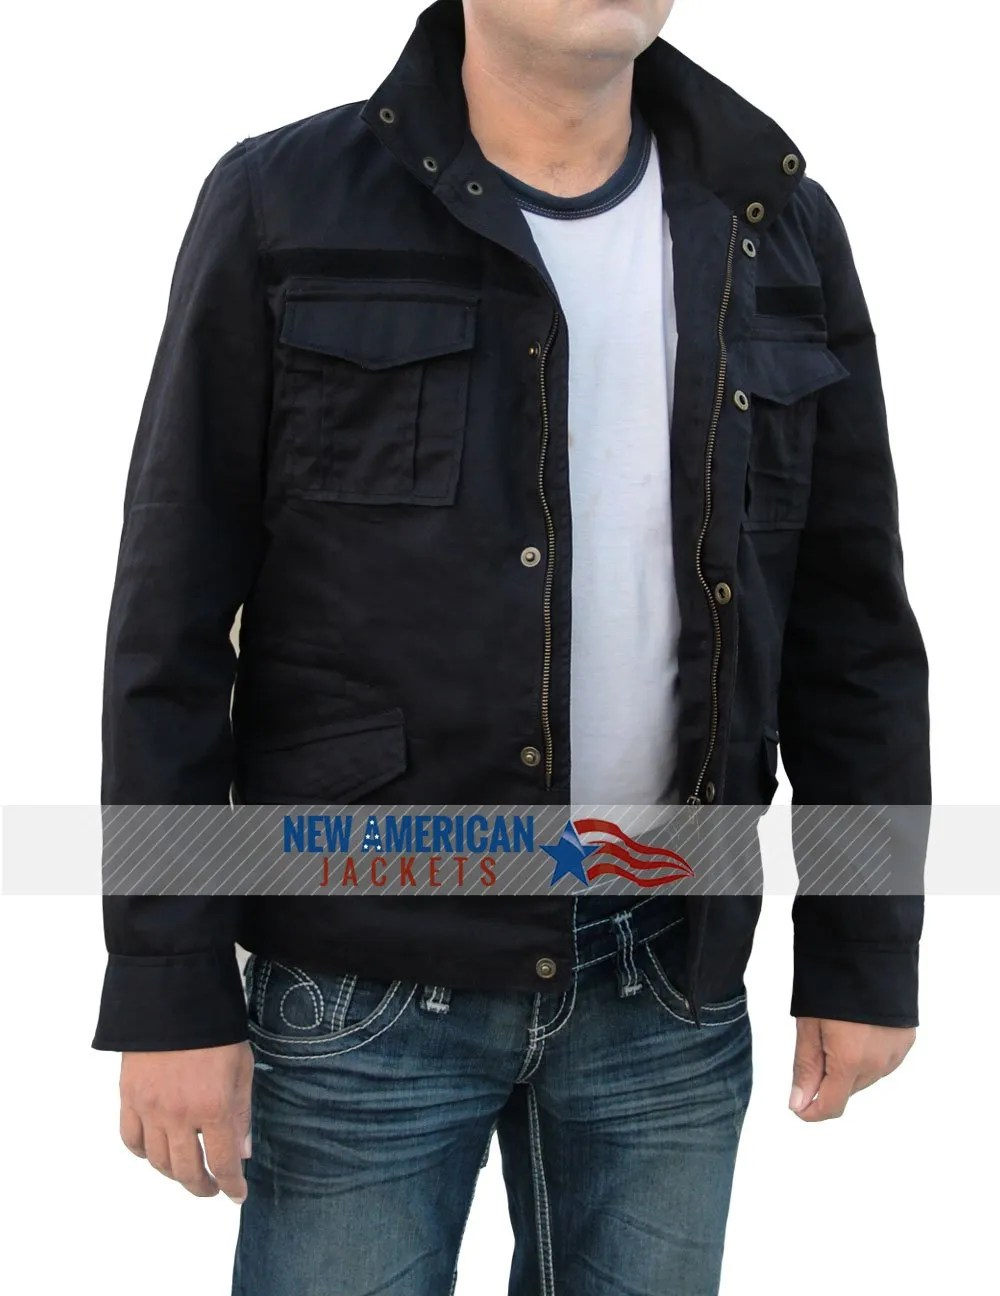 Ant Man Jacket Scott Lang Paul Rudd Jacket